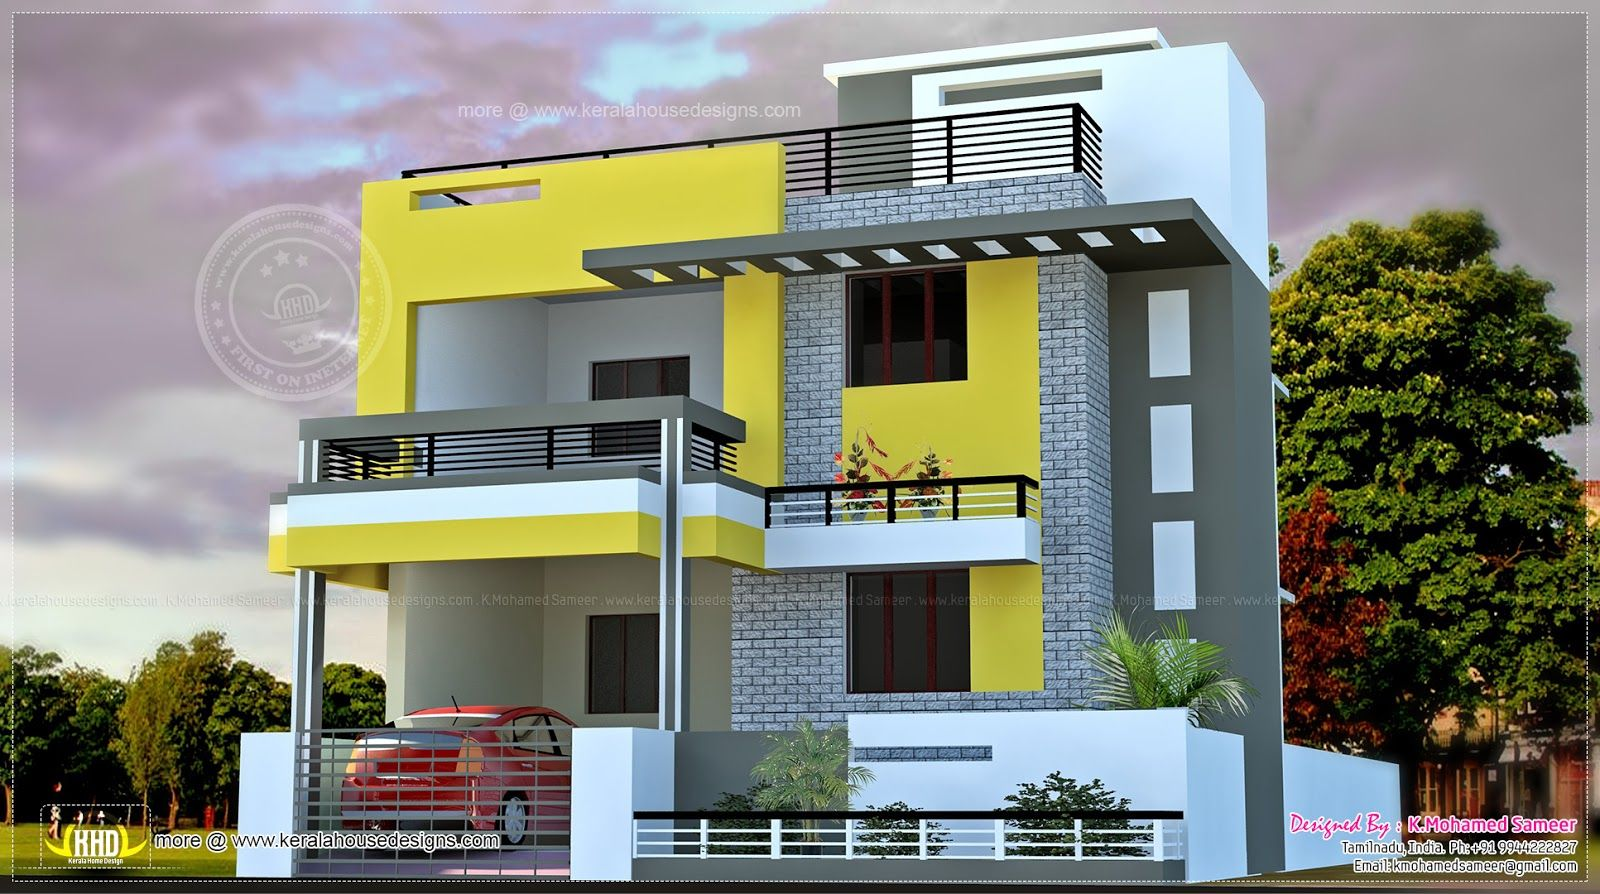 Elevations of residential buildings in indian photo Indian house exterior design